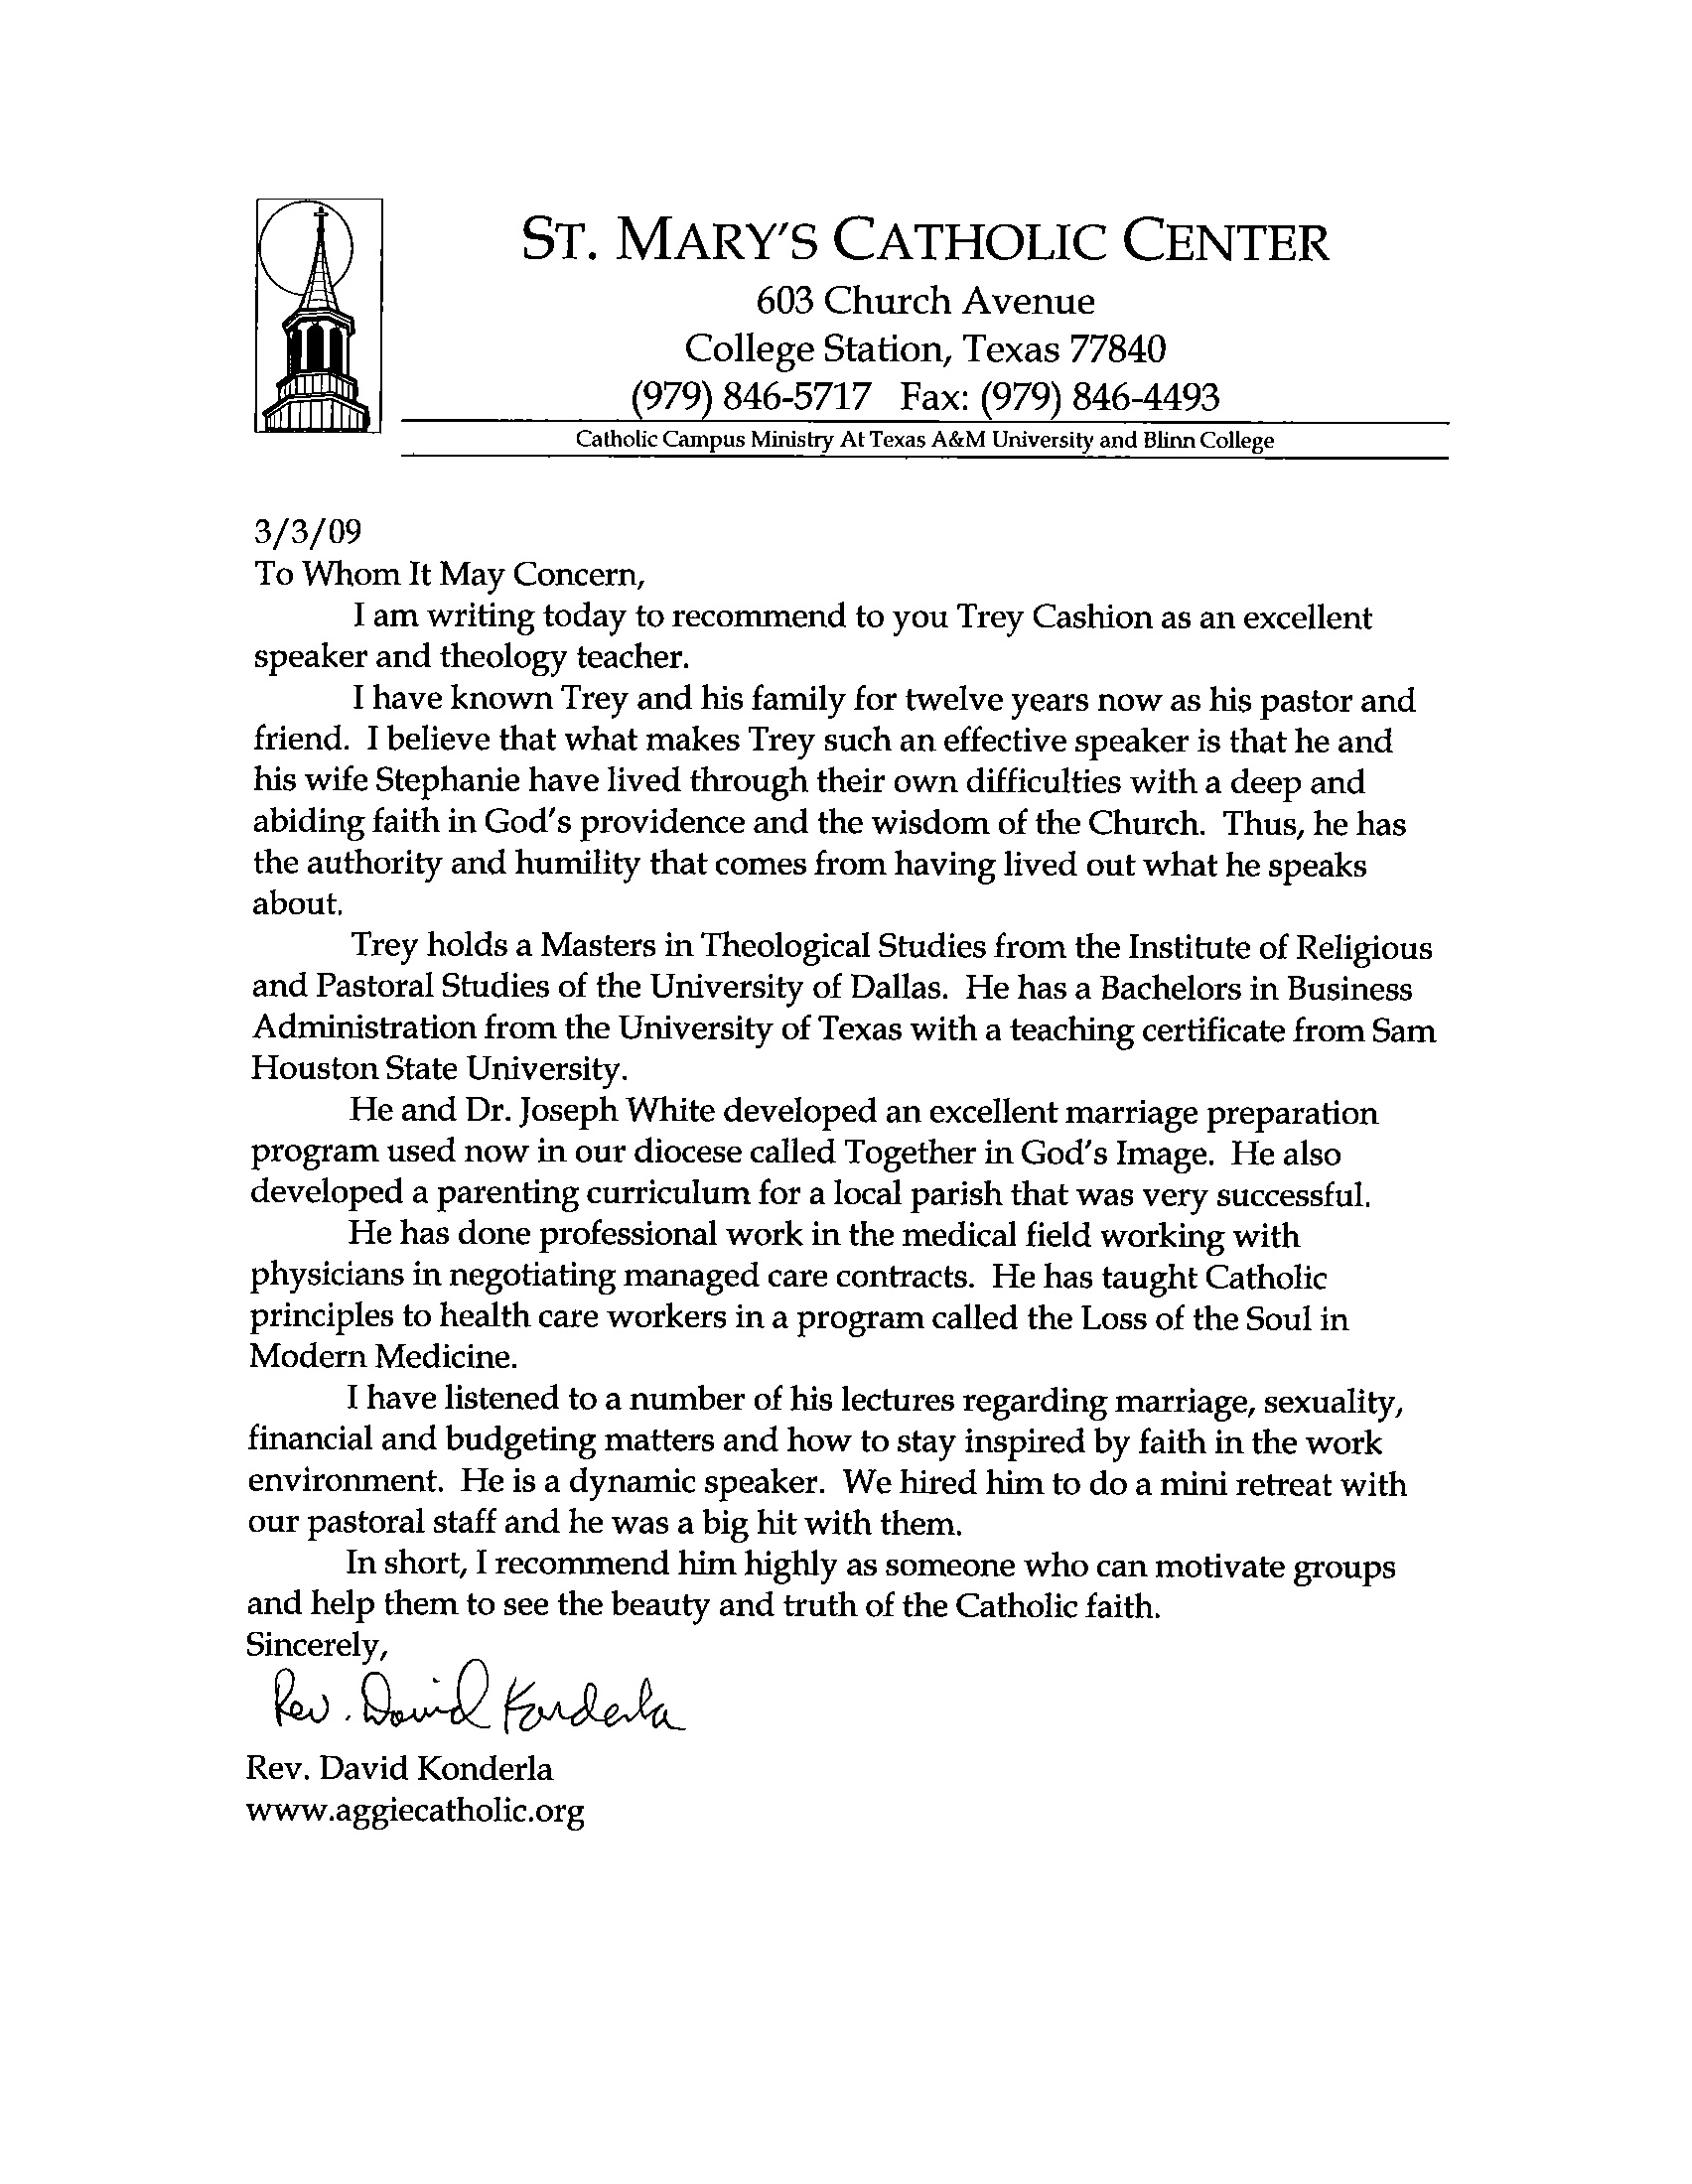 High Quality Recommendation Letter From Fr. David Konderla, Pastor At St. Maryu0027s  Catholic Center In College Station, TX